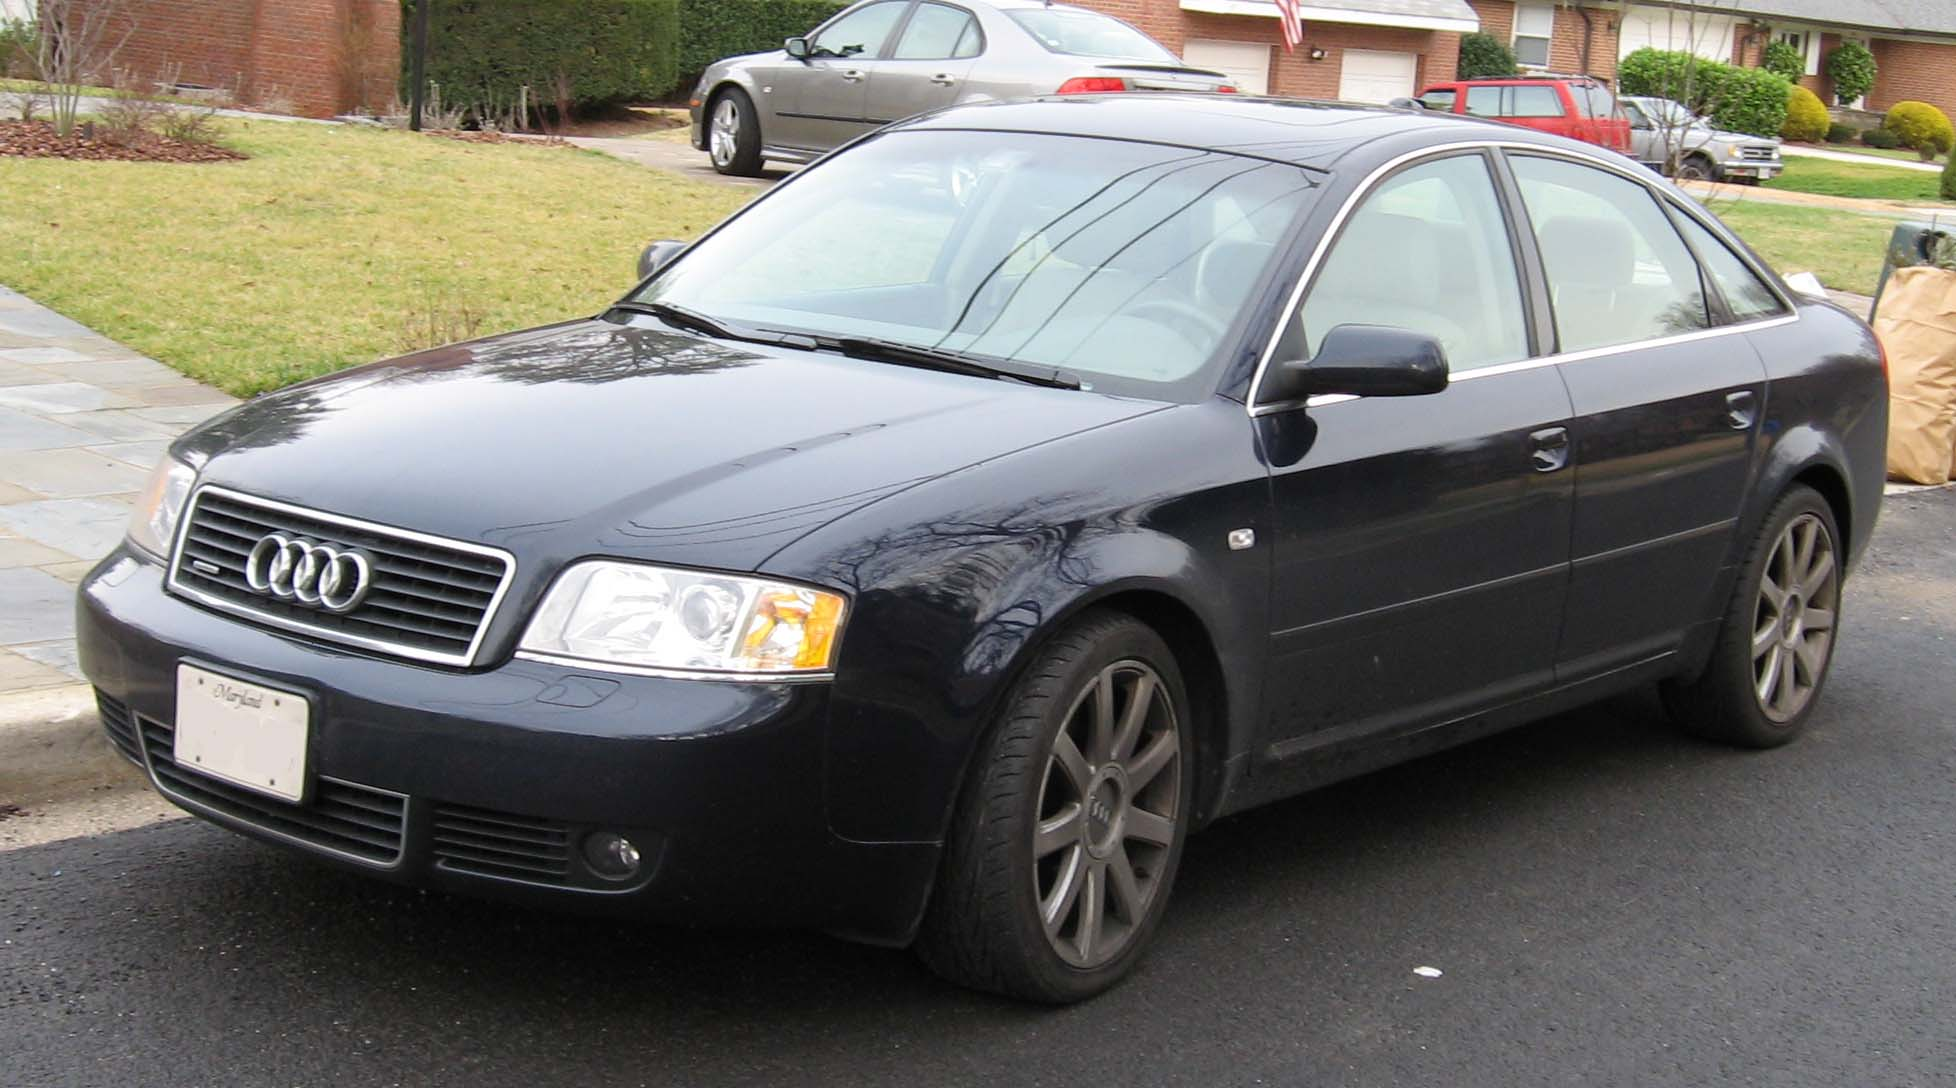 File Audi A6 C5 Jpg Wikimedia Commons